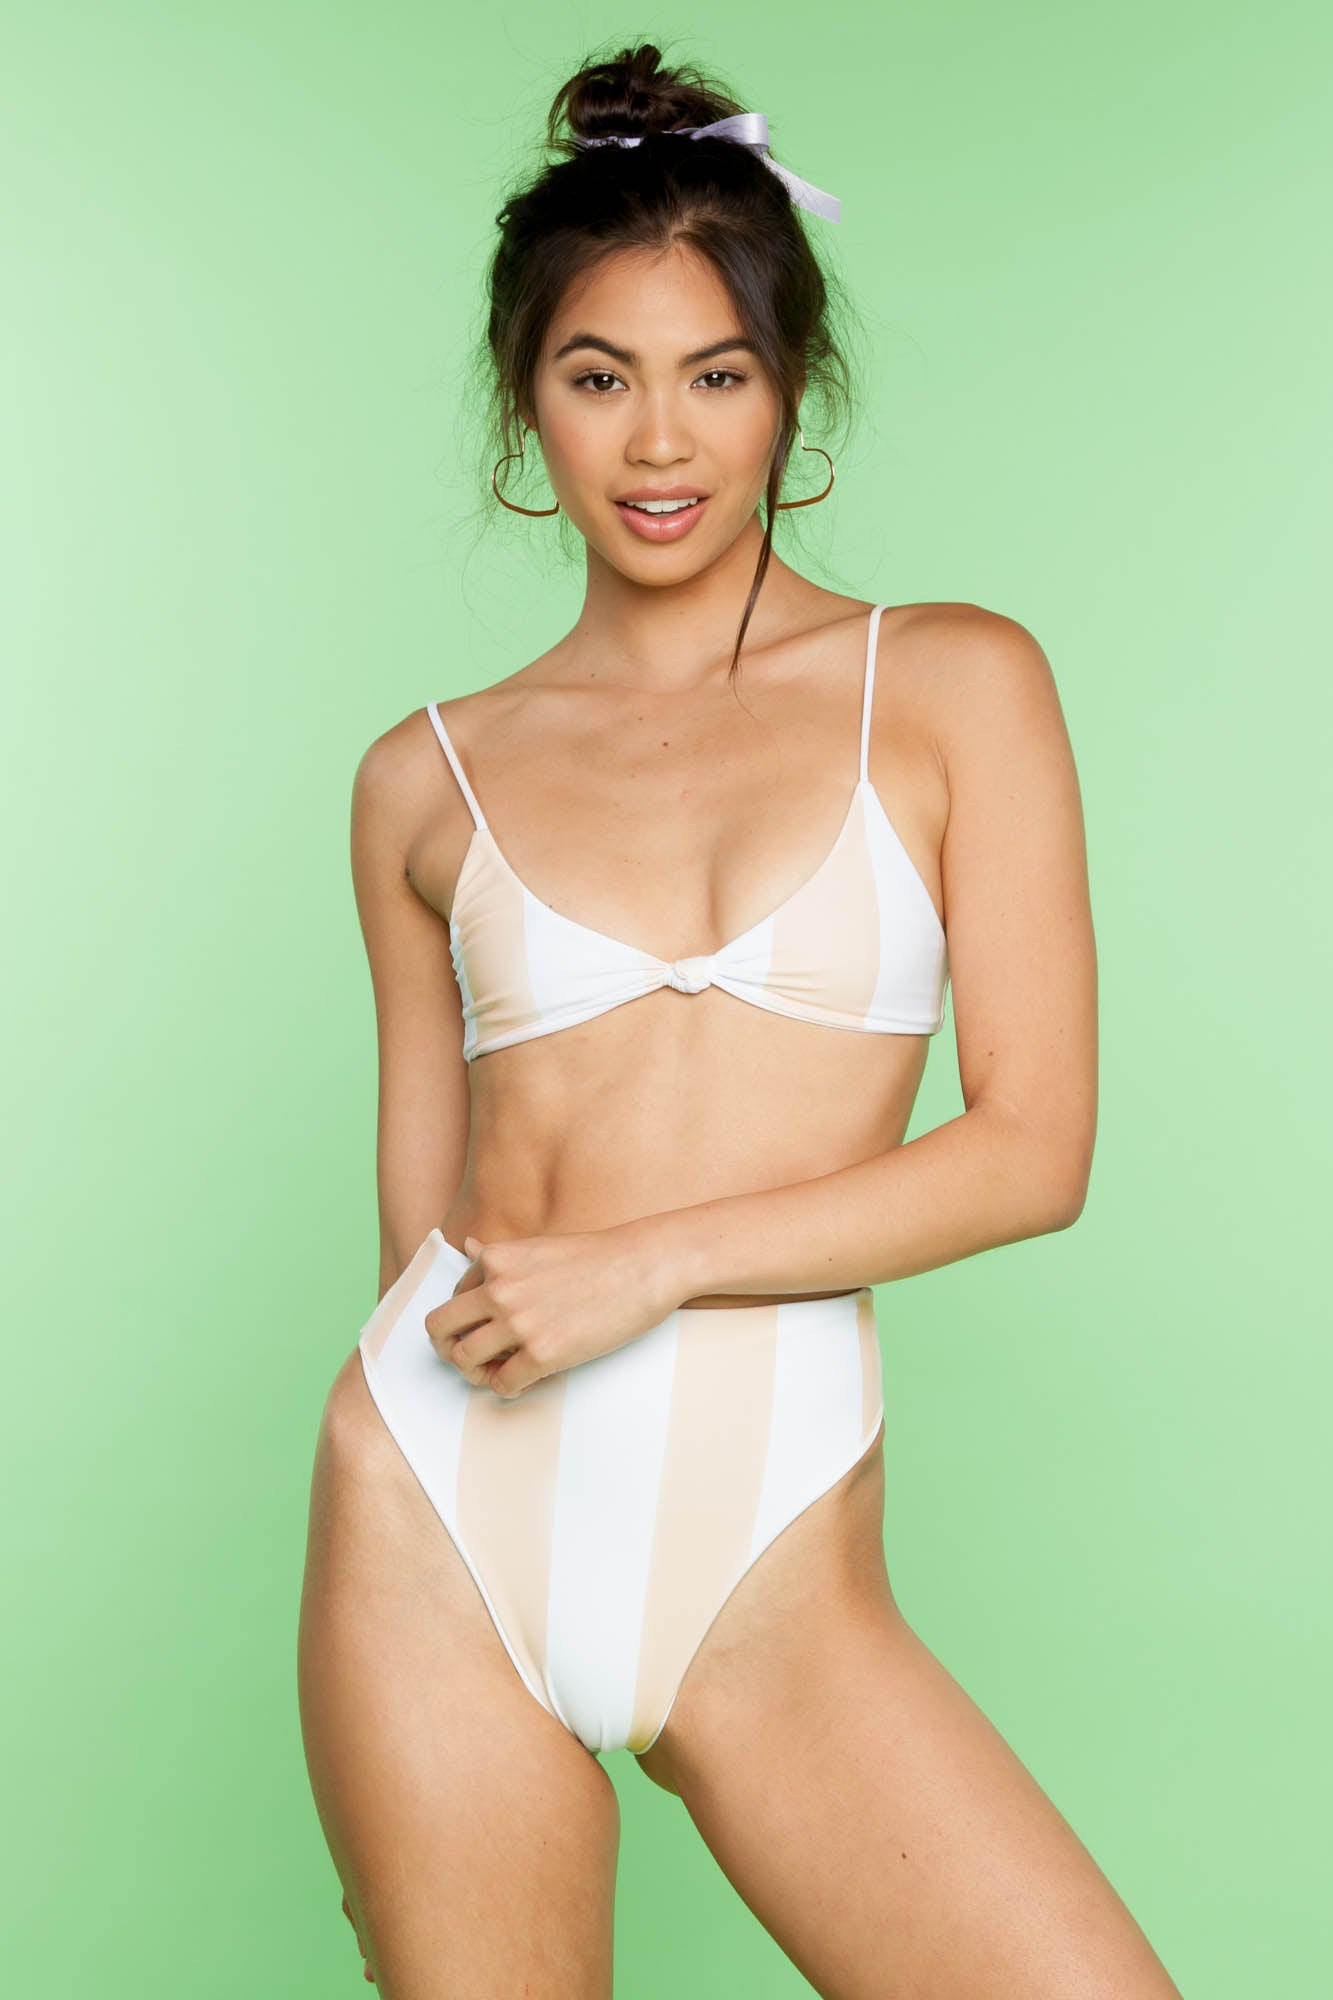 Knotty Top - Skinny Dip